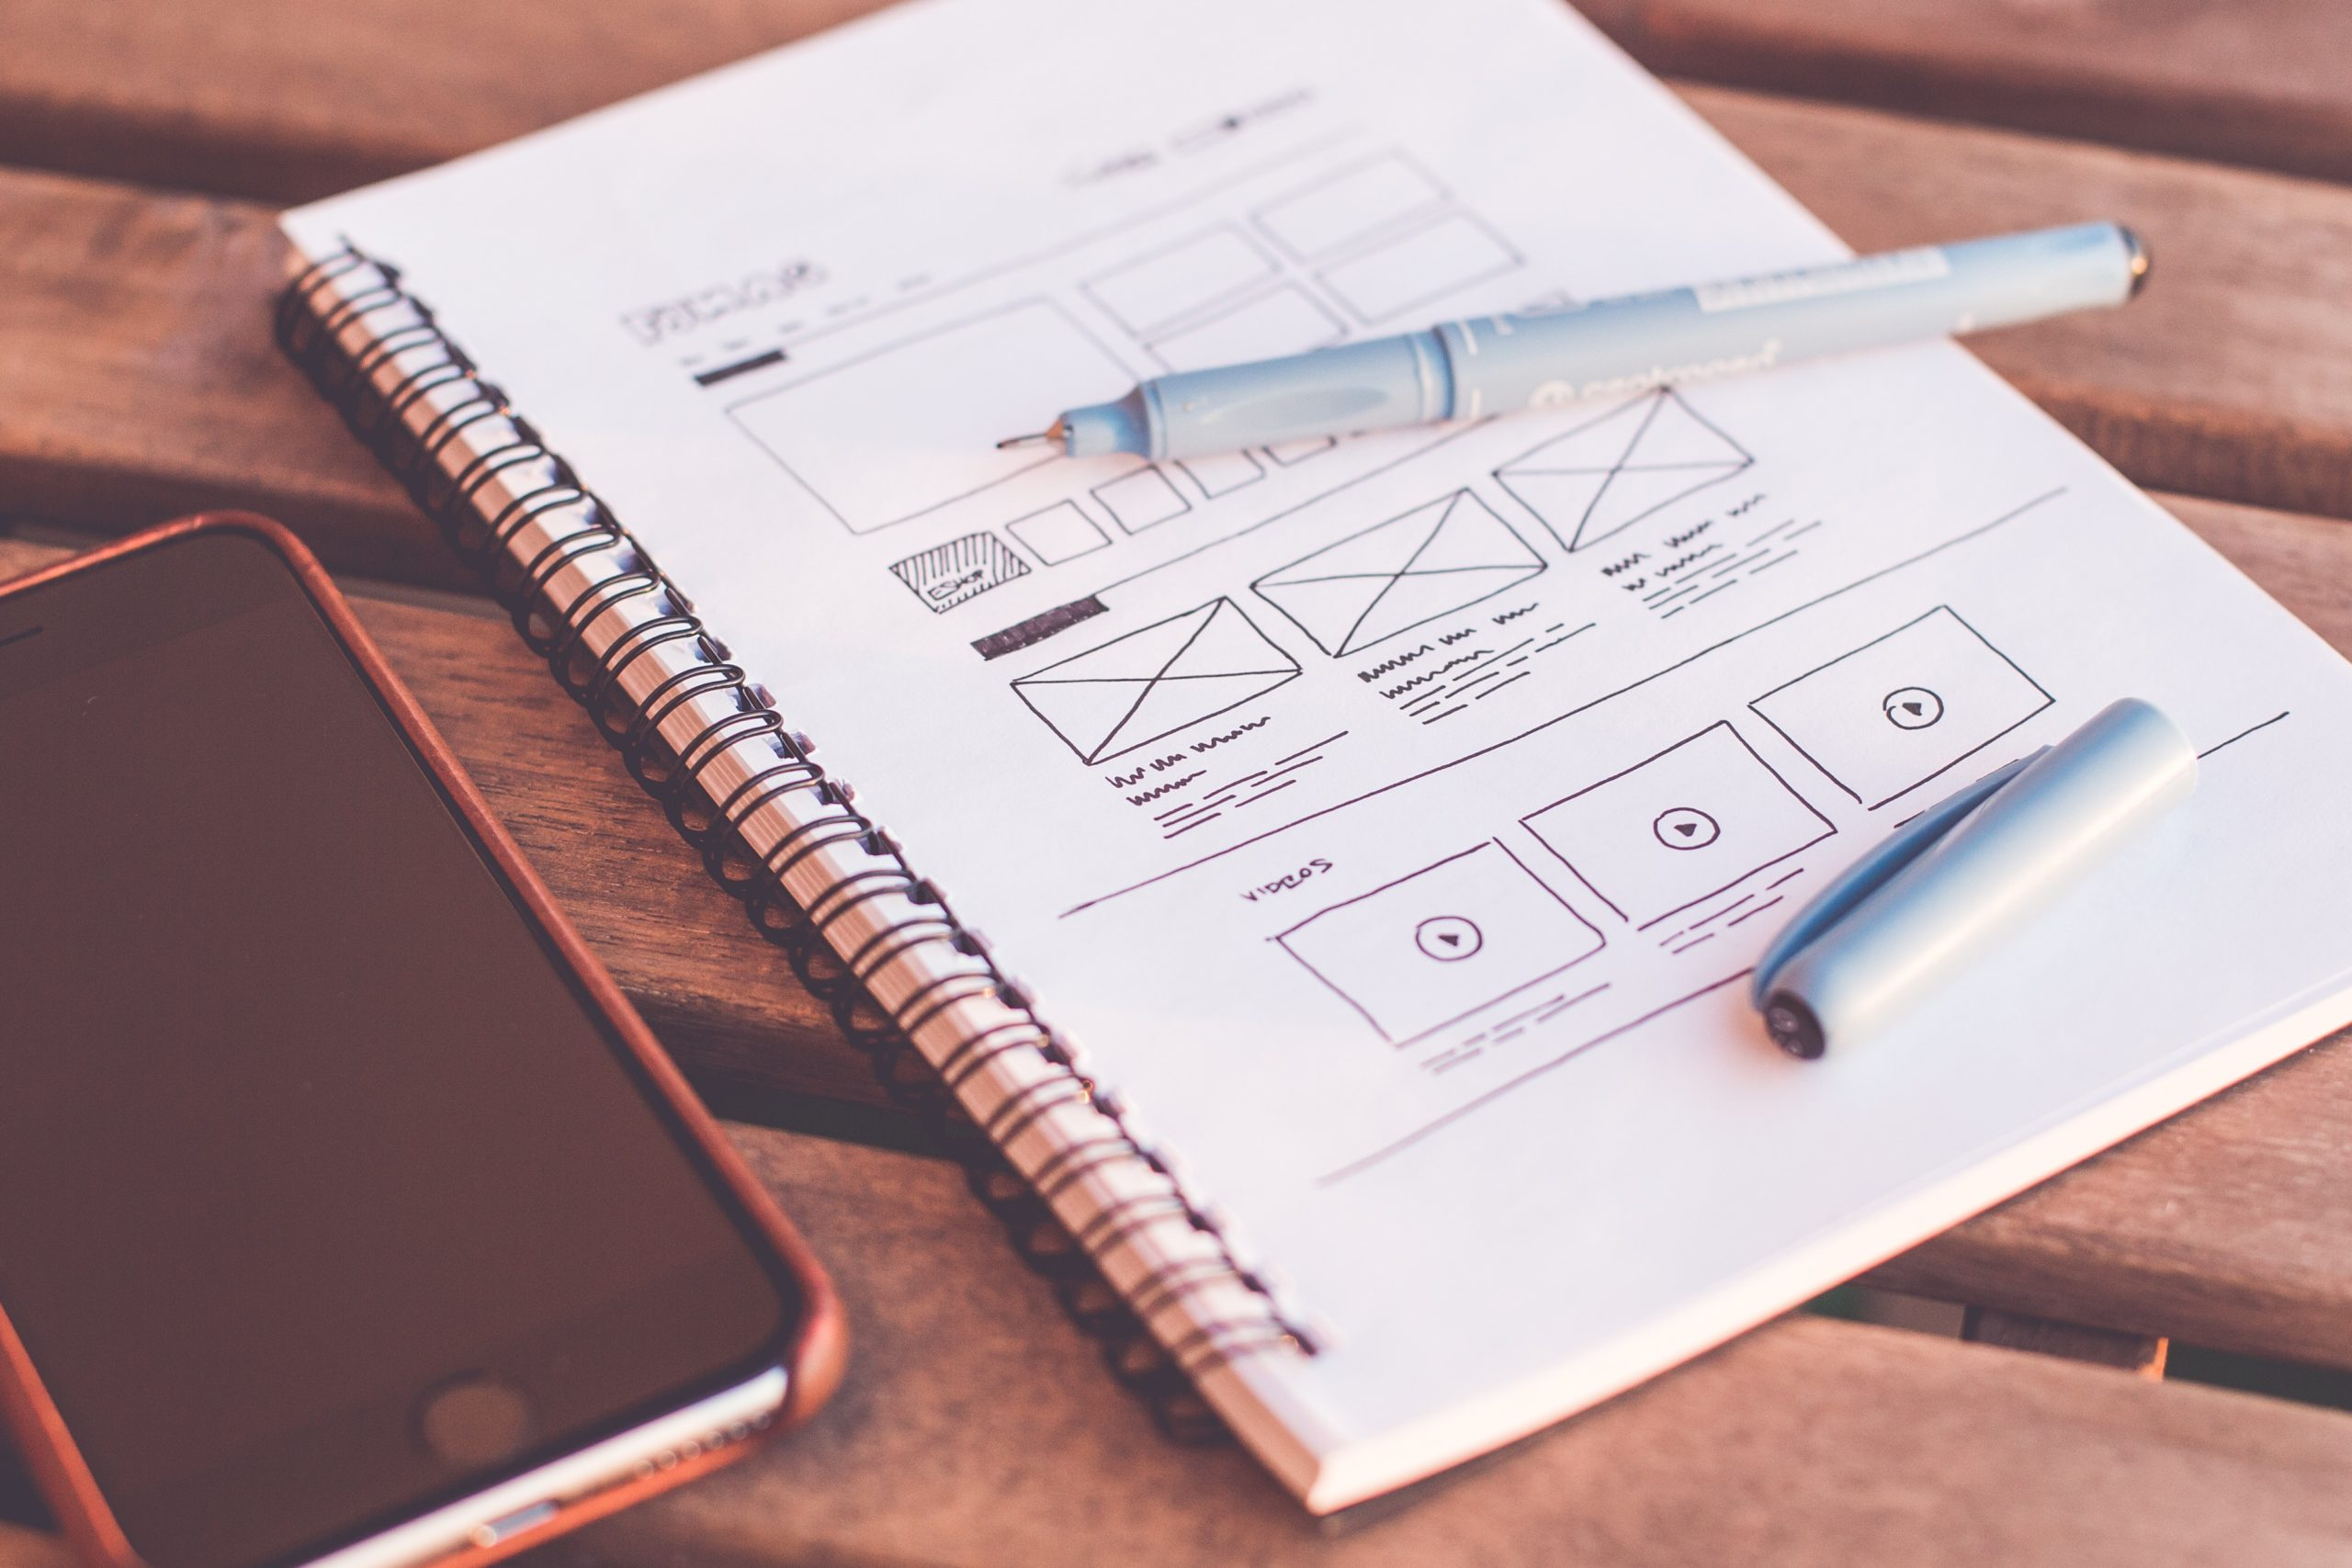 Mobile App Prototyping: Why It is So Important for App Projects?